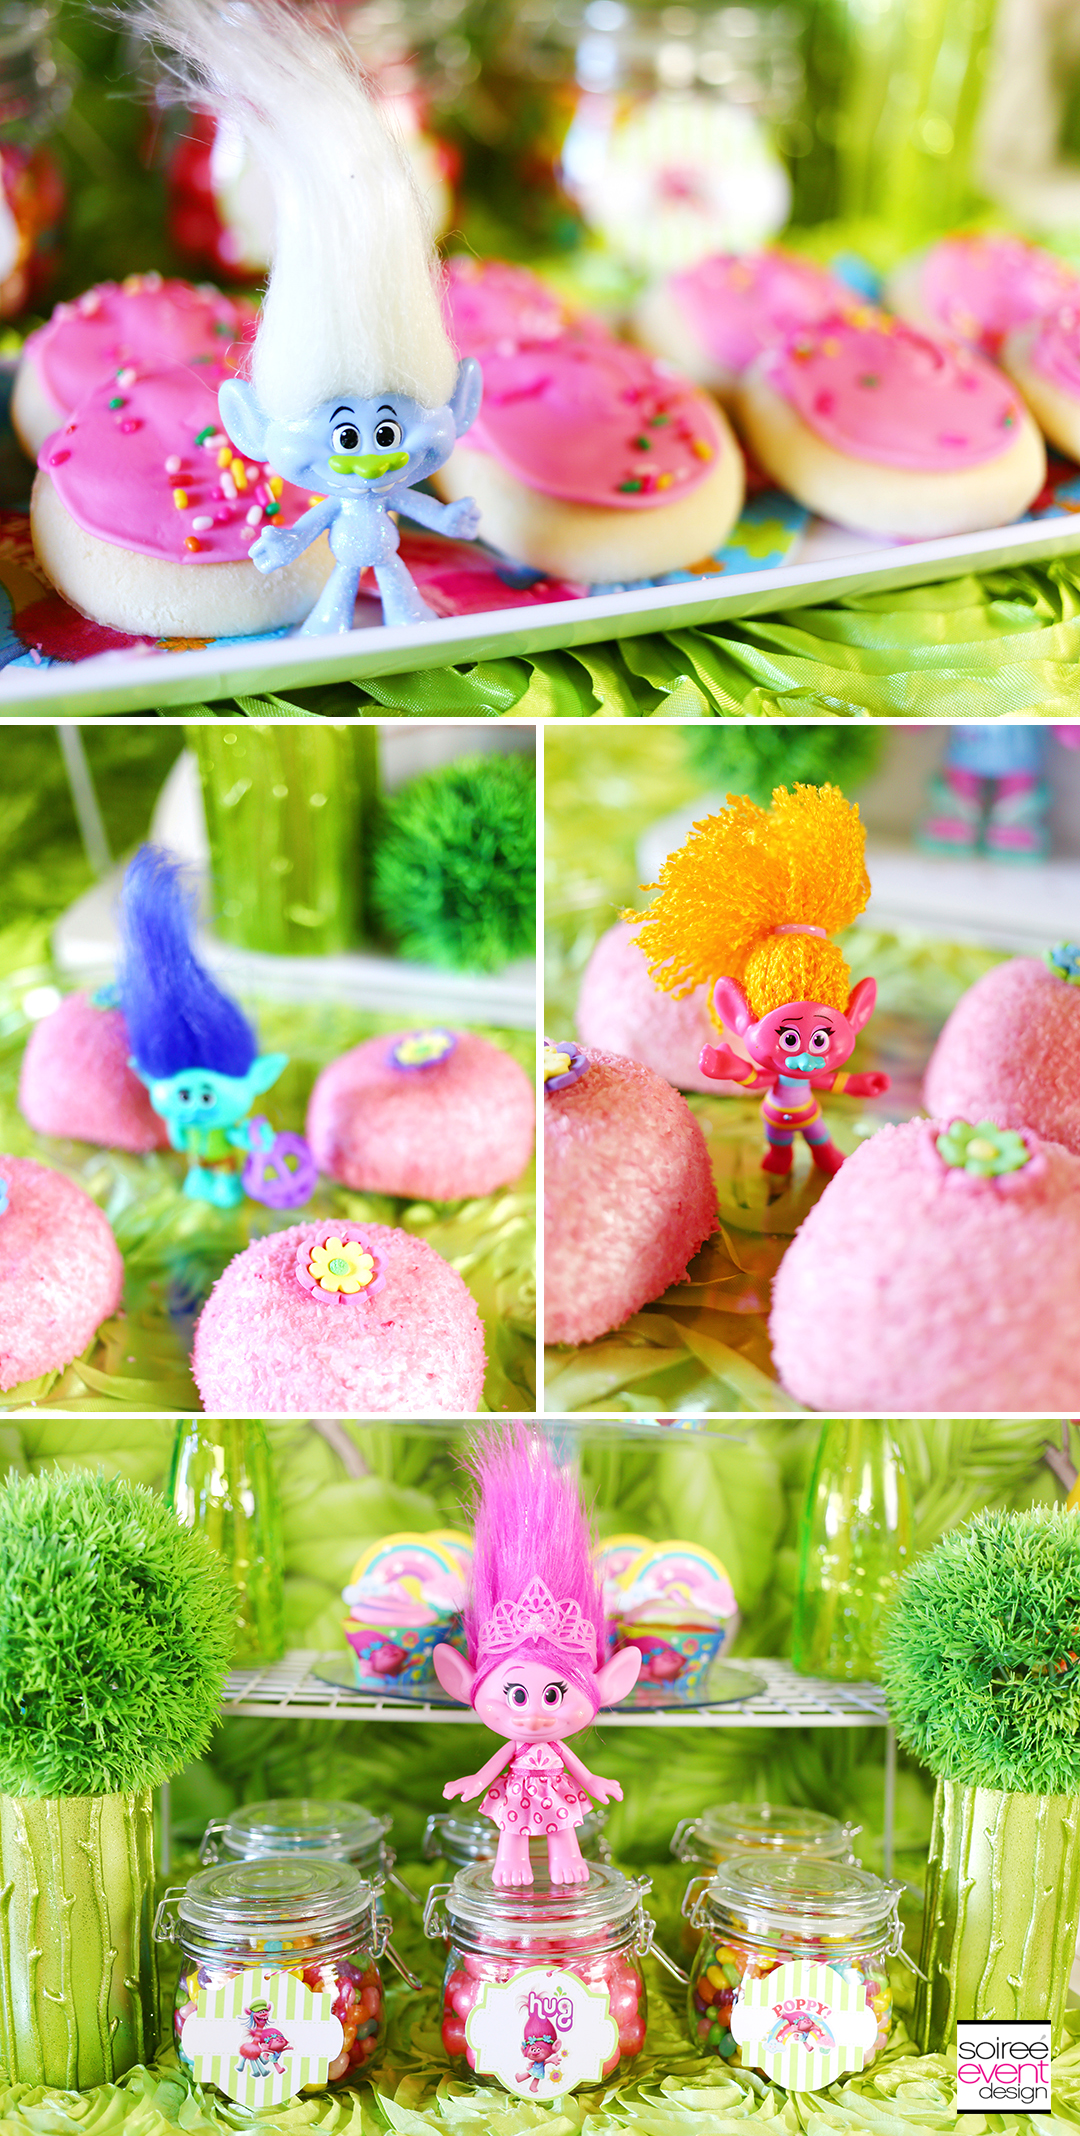 Trolls party ideas - Trolls Desserts